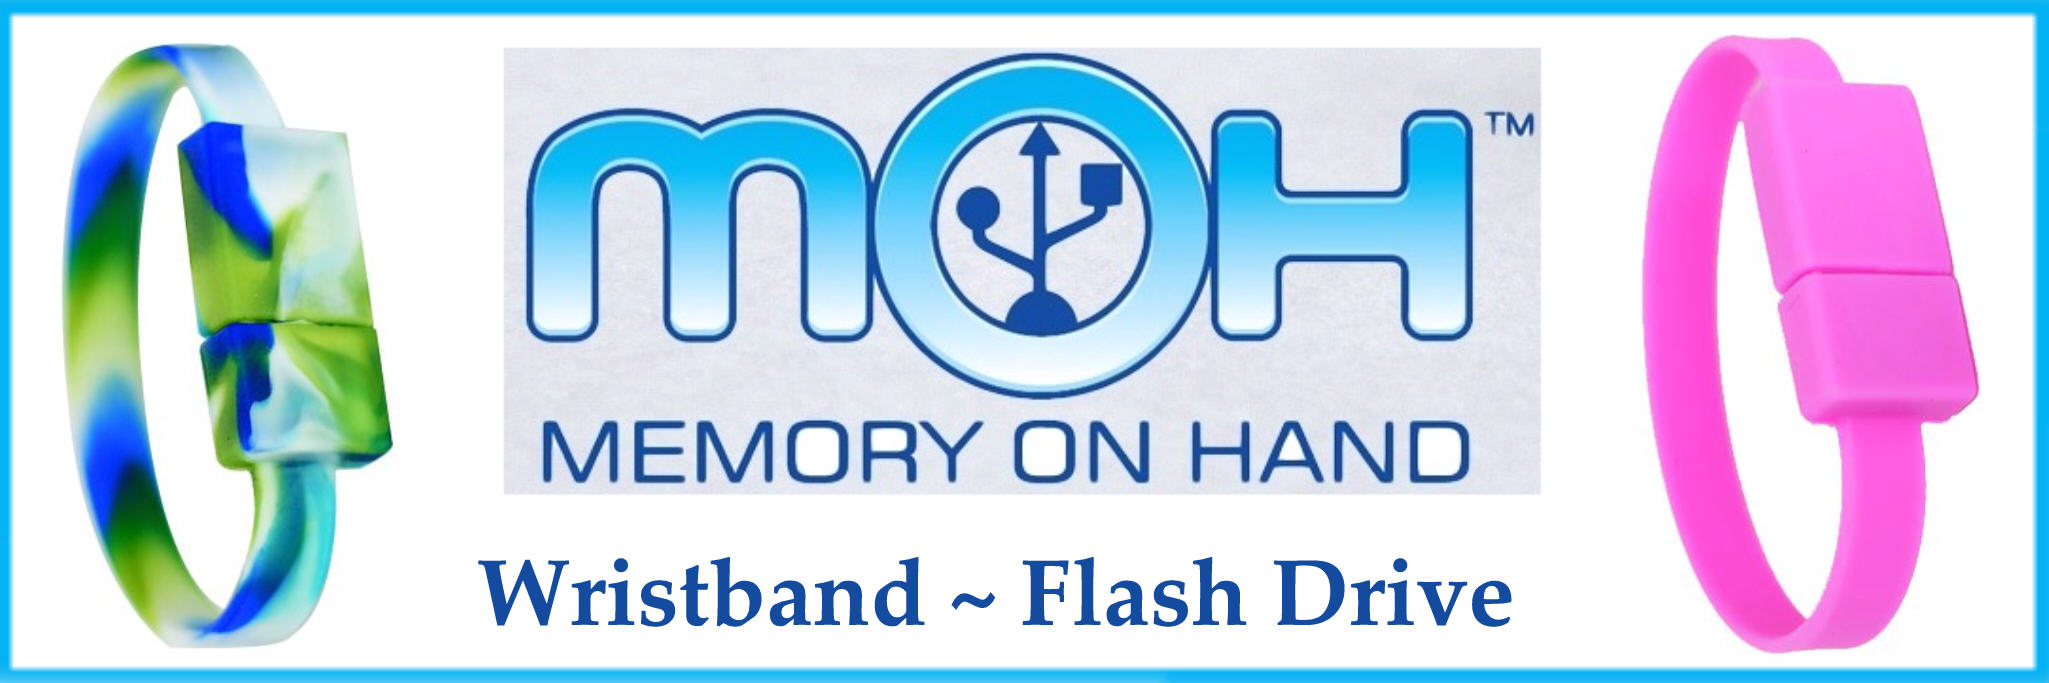 MoH 4GB Flash Drive Wristband 01/01/2013 US and CAN